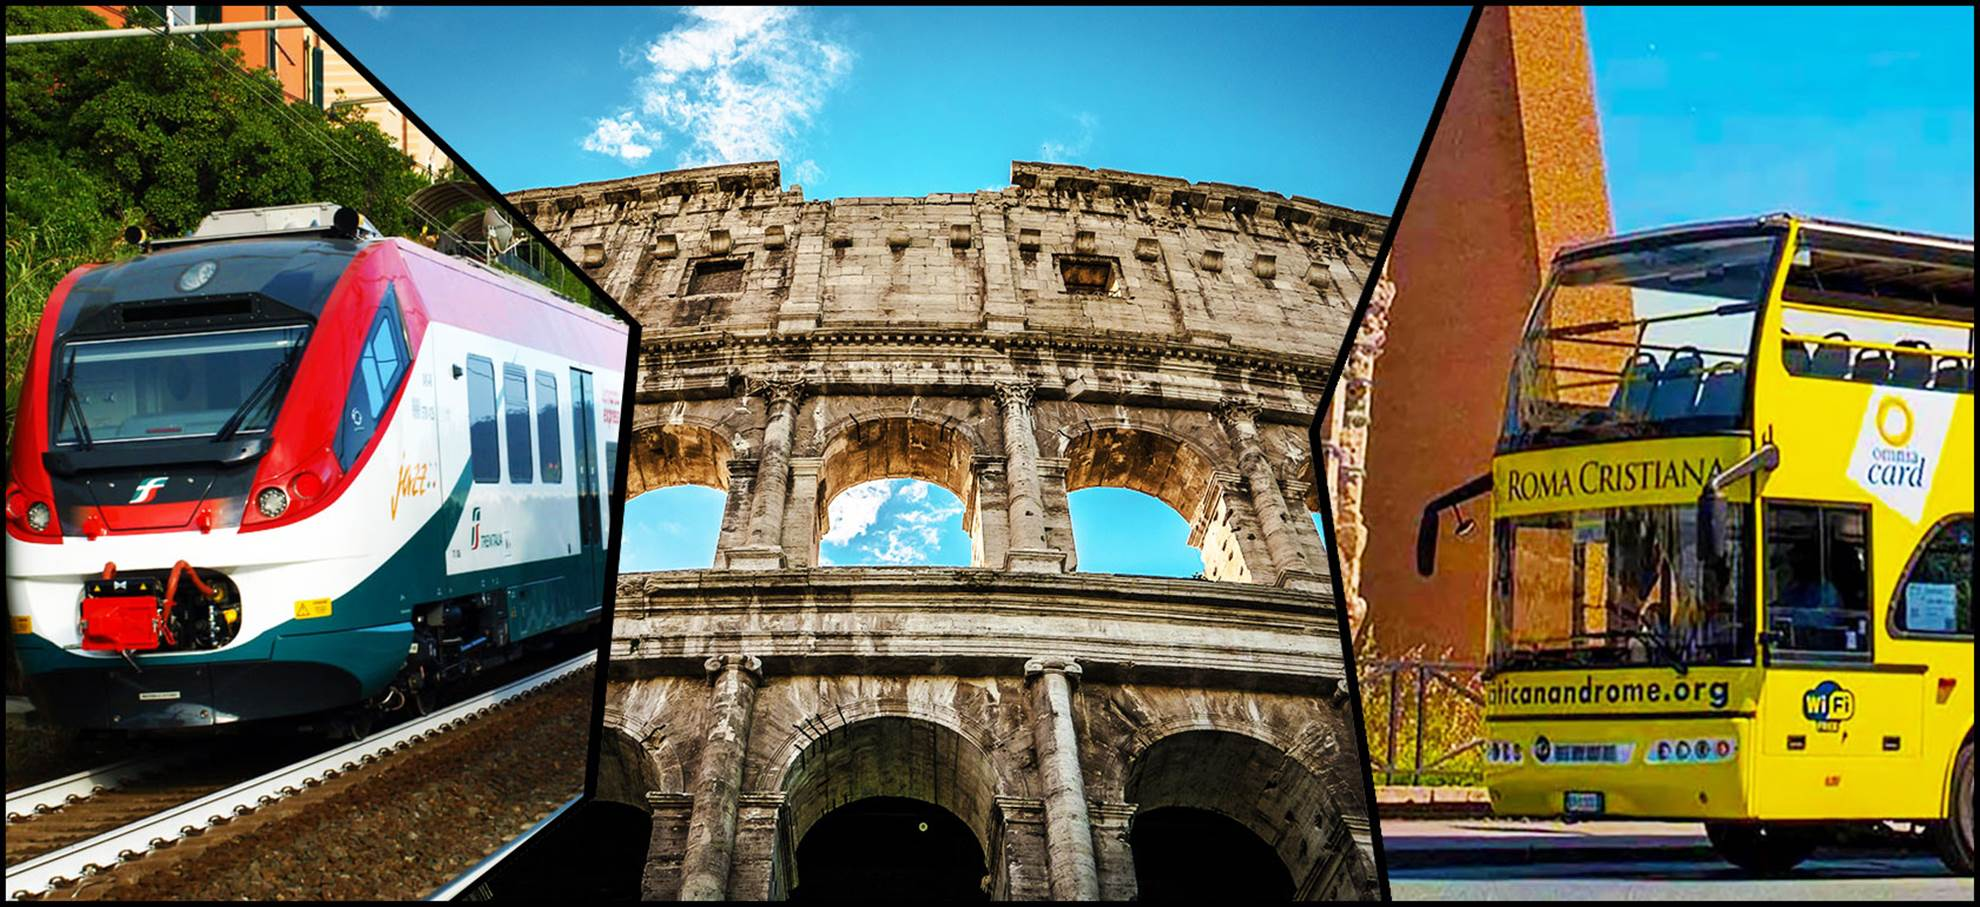 Leonardo Express Super Combi! (Incl. Colosseum)